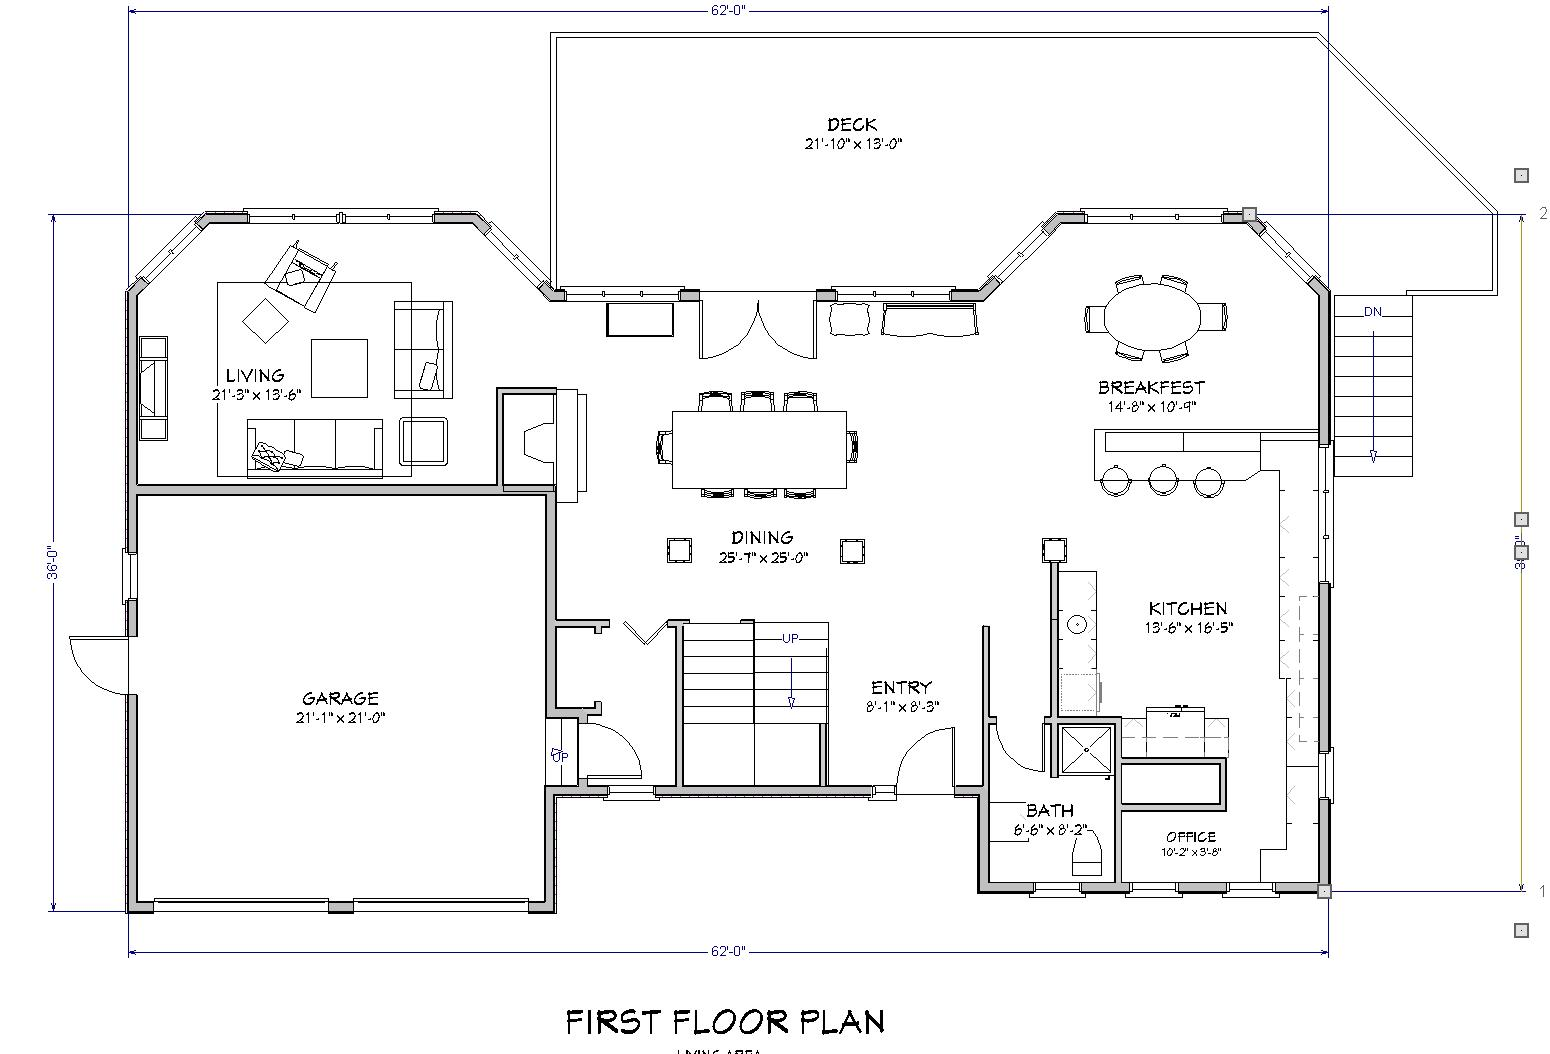 Plan, Lake House Plan, Cape Cod Beach House Plan : The House Plan Site ...